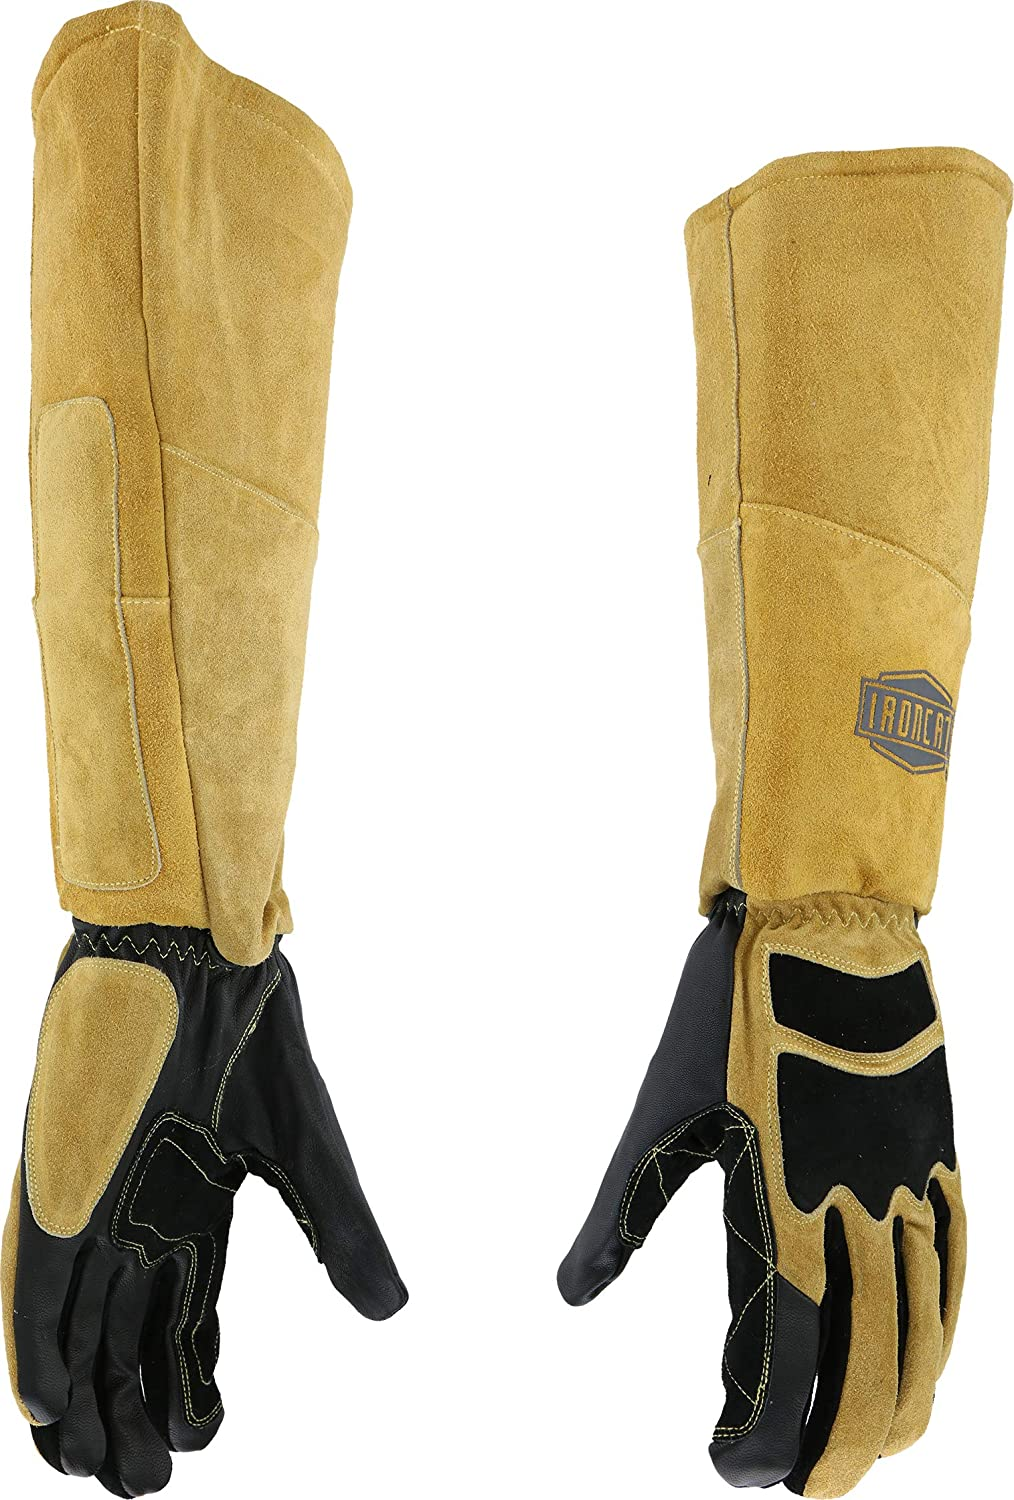 West Chester IRONCAT 9070 Premium Grain Goatskin and Split Cowhide Leather Stick Welding Gloves X Large 1 Pair